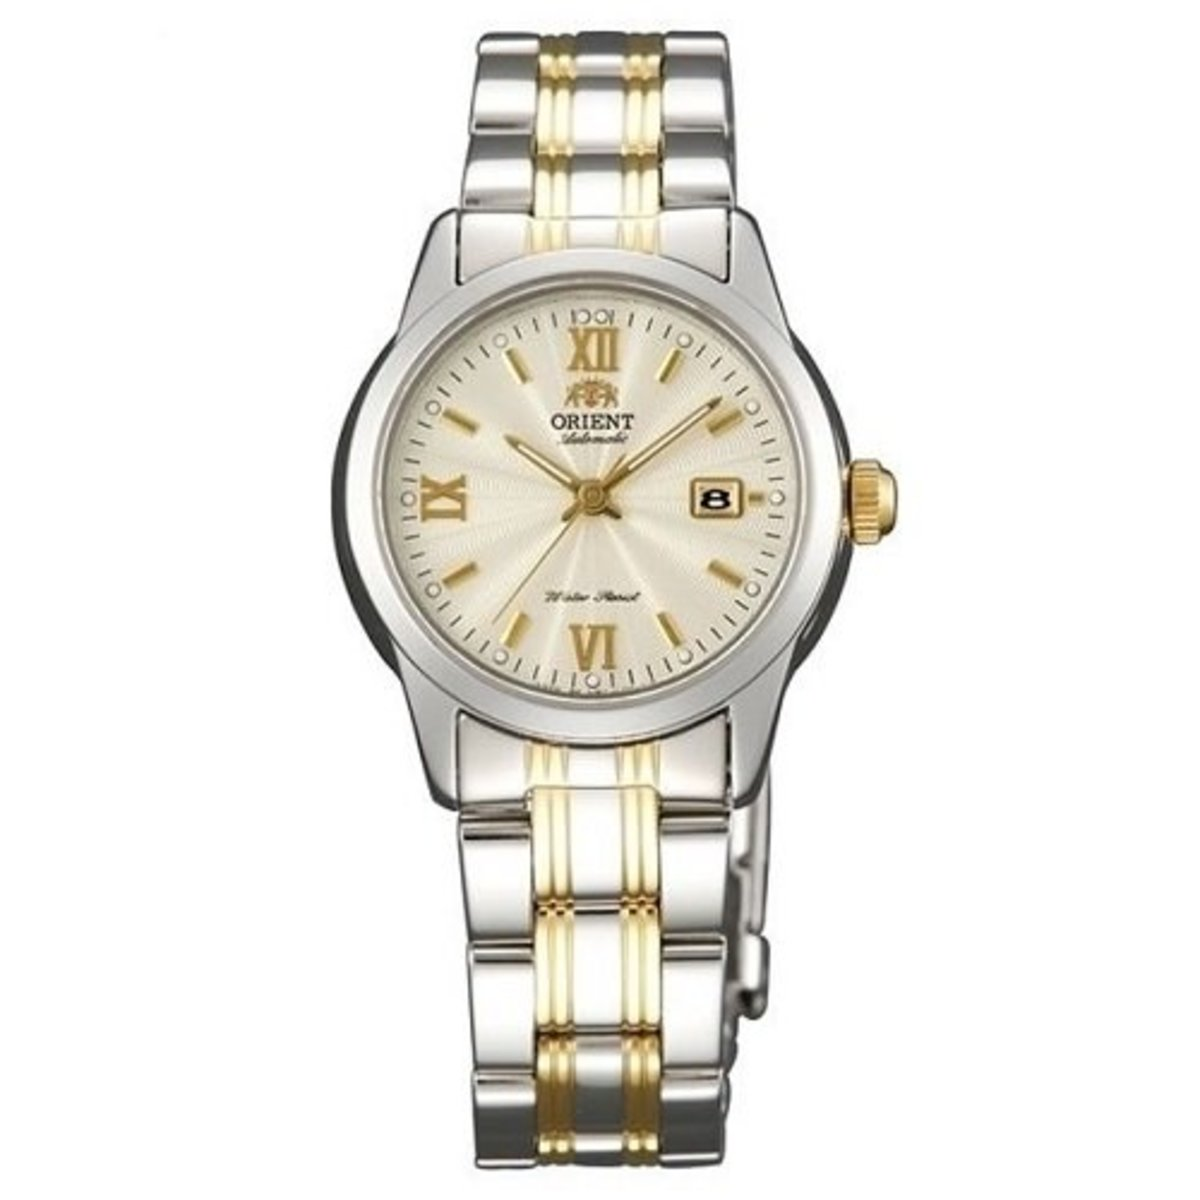 Orient World Stage collection Woman Automatic Mechanical Watch WV0611NR Parallel Import